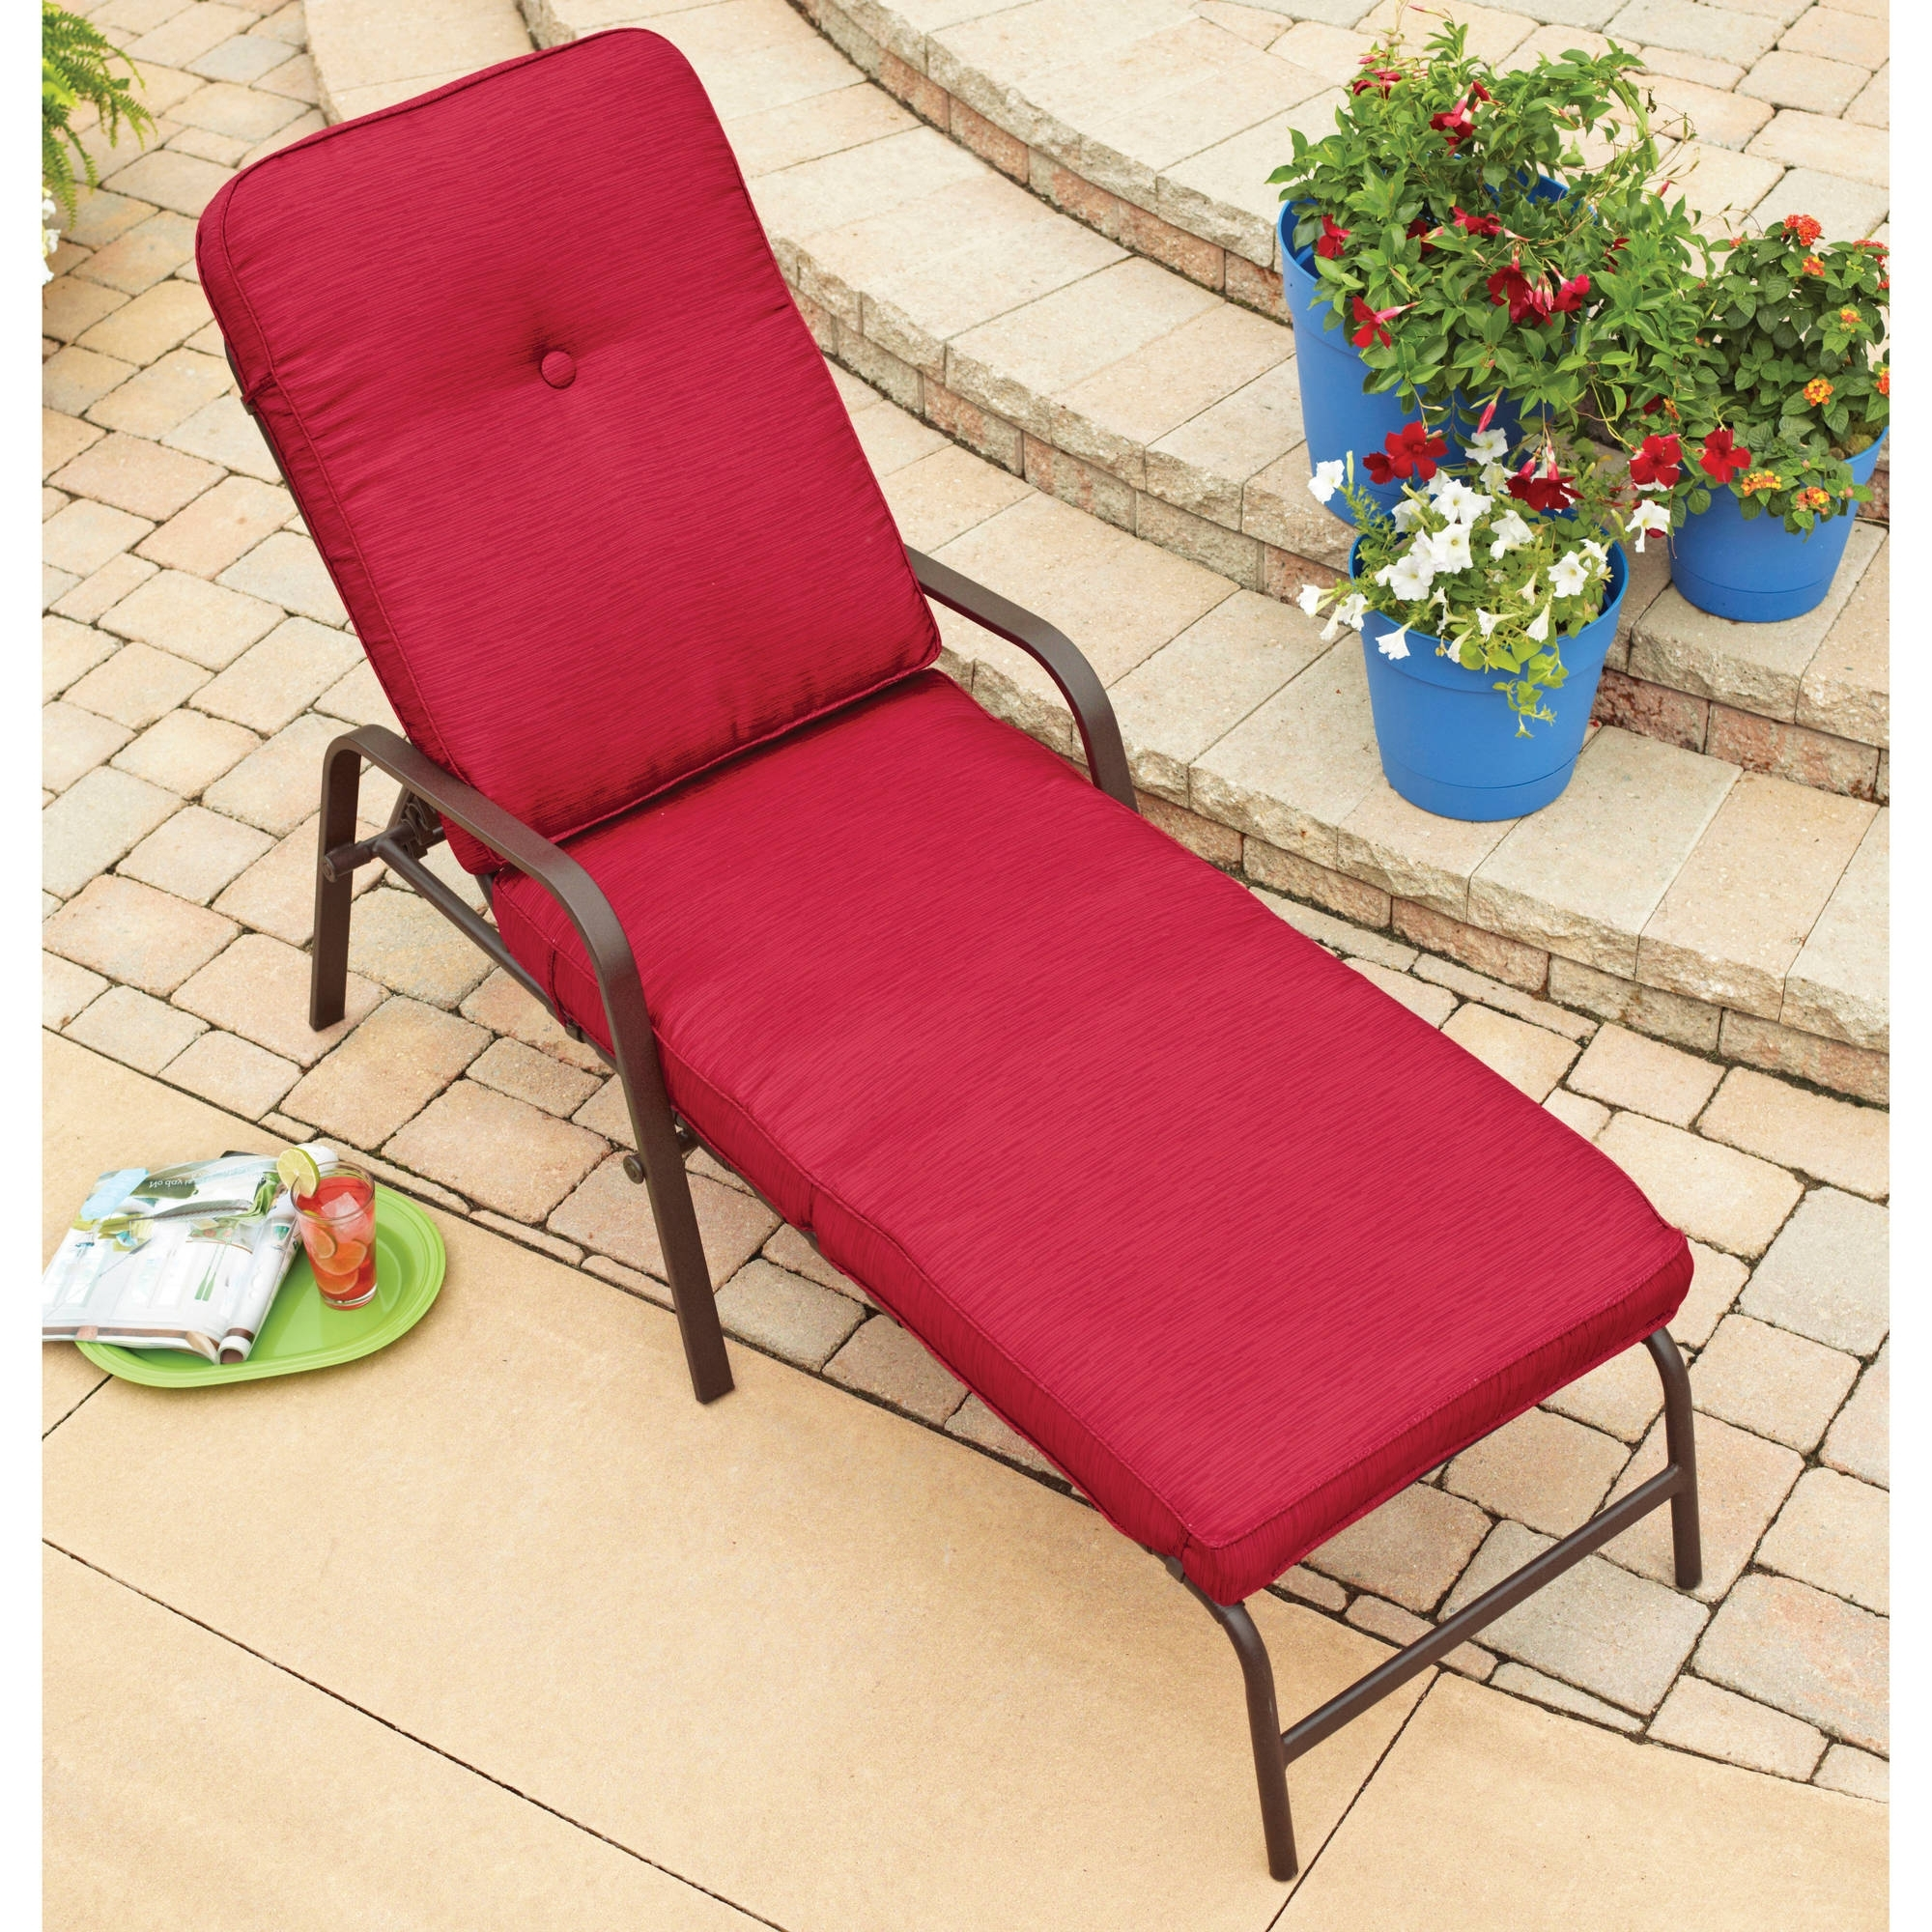 Most Popular Outdoor Chaise Lounge Chairs At Walmart Inside Alluring Patio Chaise Lounge Walmart On Red Outdoor Lounge Chairs (View 14 of 15)